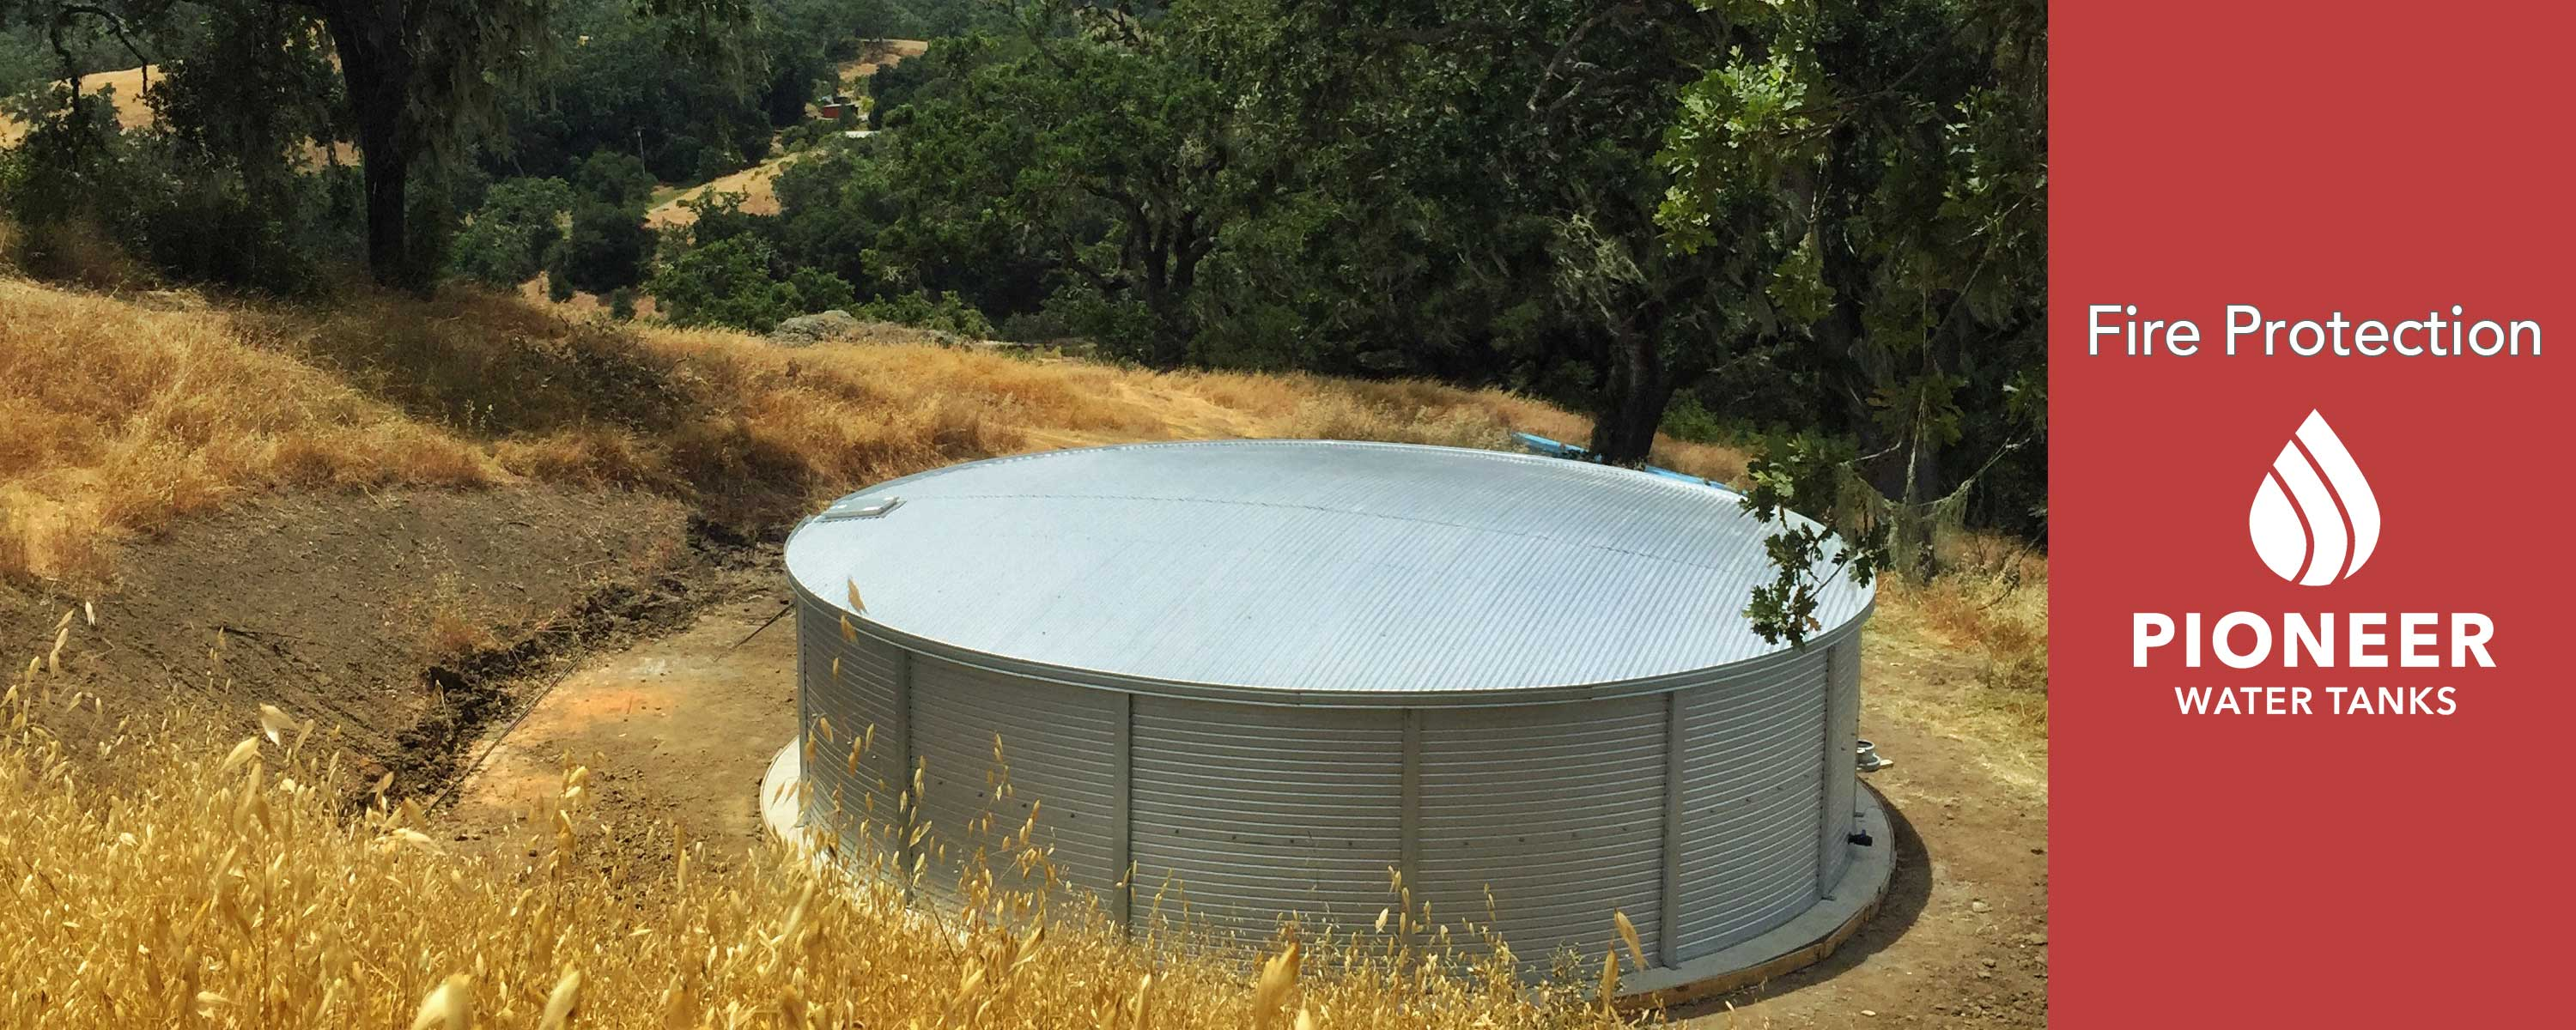 Fire Protection California water storage tanks Pioneer